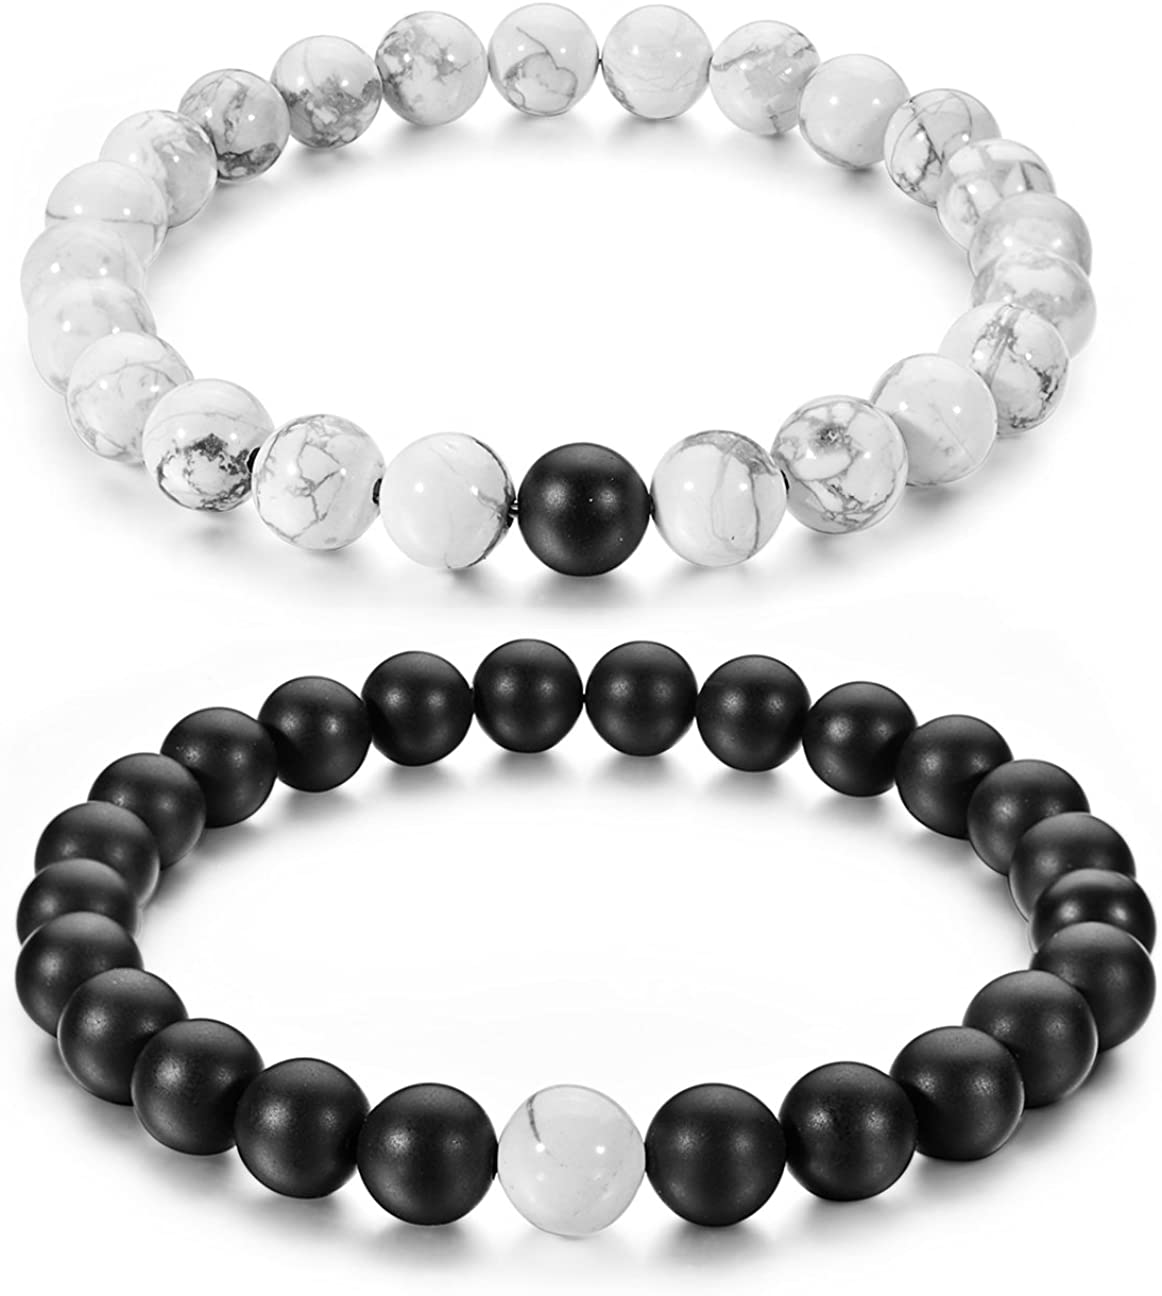 Couples His and Hers Bracelet Black Matte Agate & White Howlite 8mm Beads By Long Way 7.1